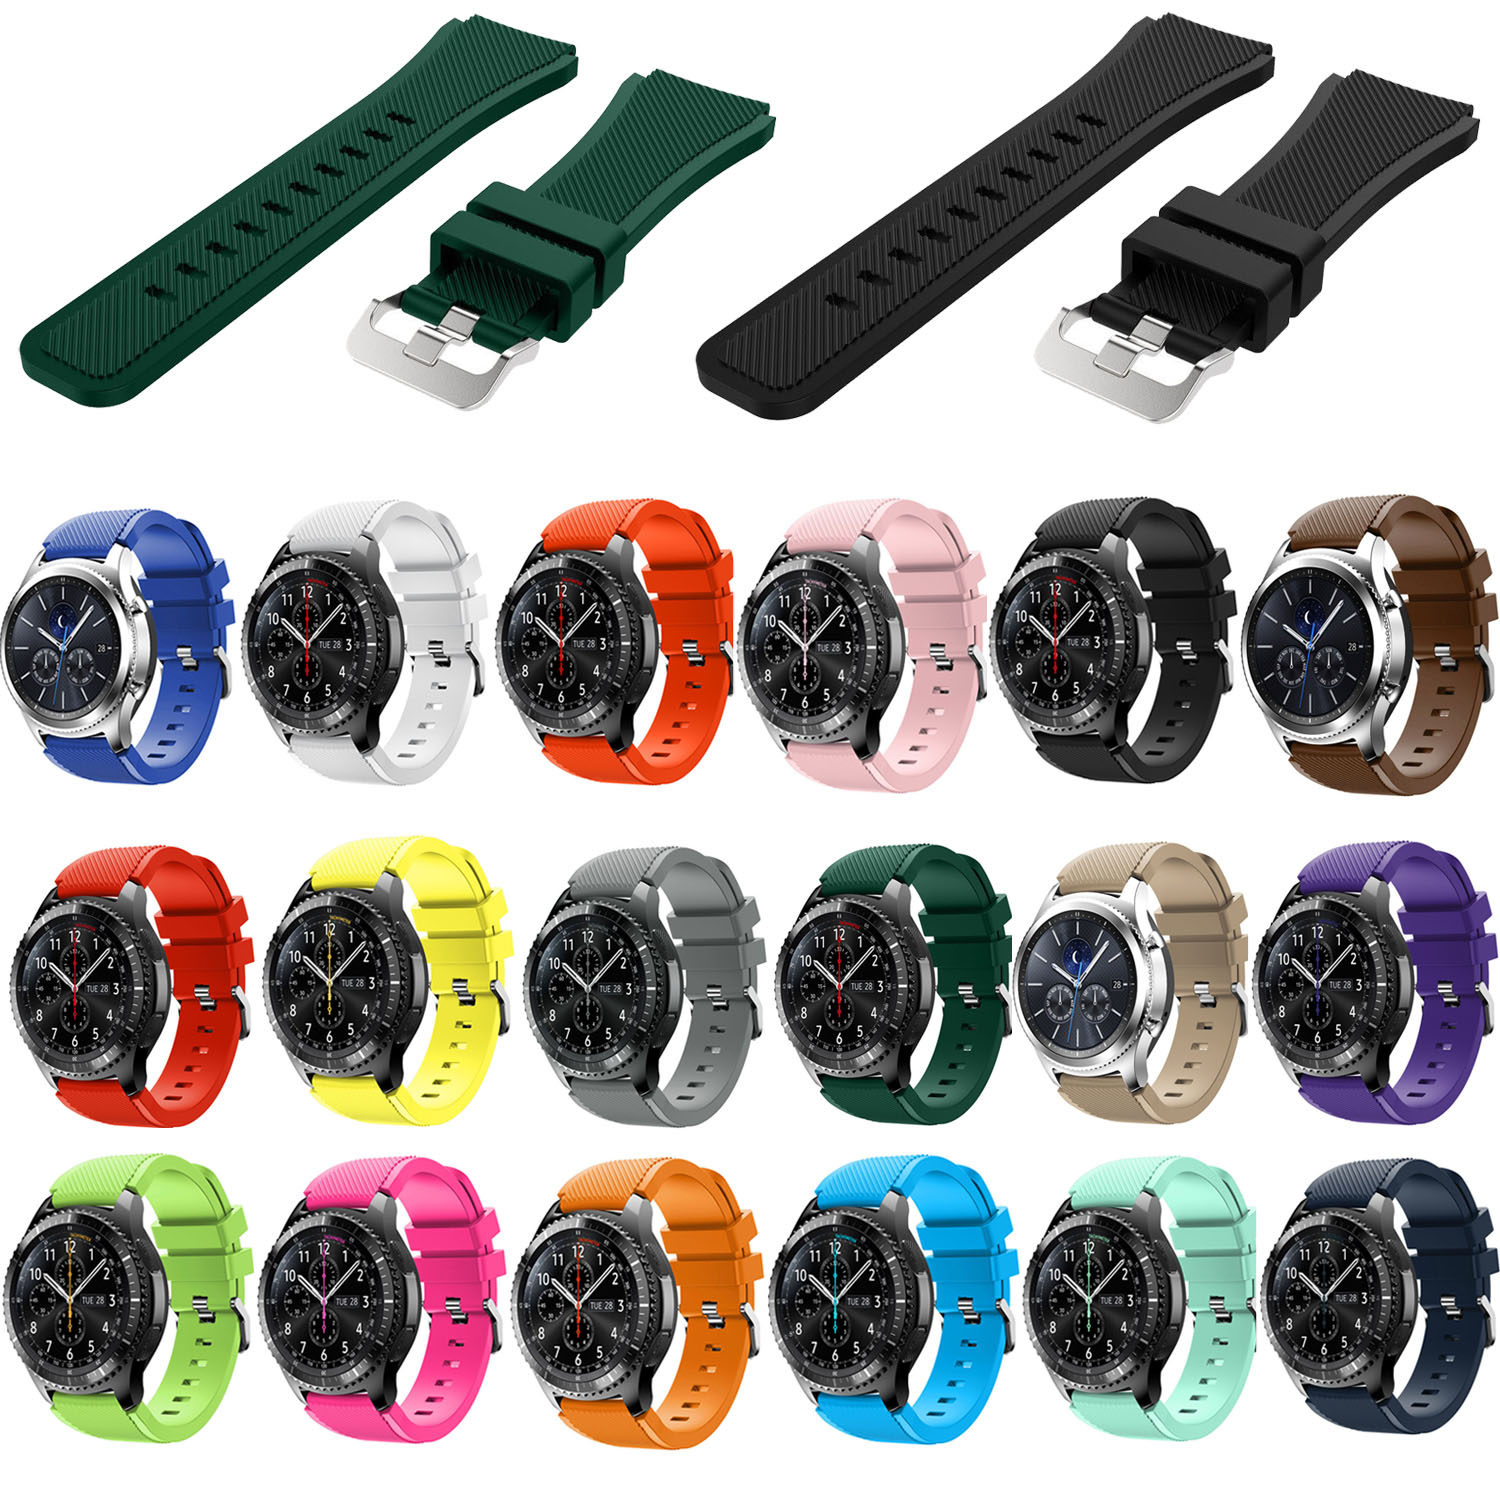 18 Colors Rubber Wrist Strap for Samsung Gear S3 Frontier Silicone Watch Band for Samsung Gear